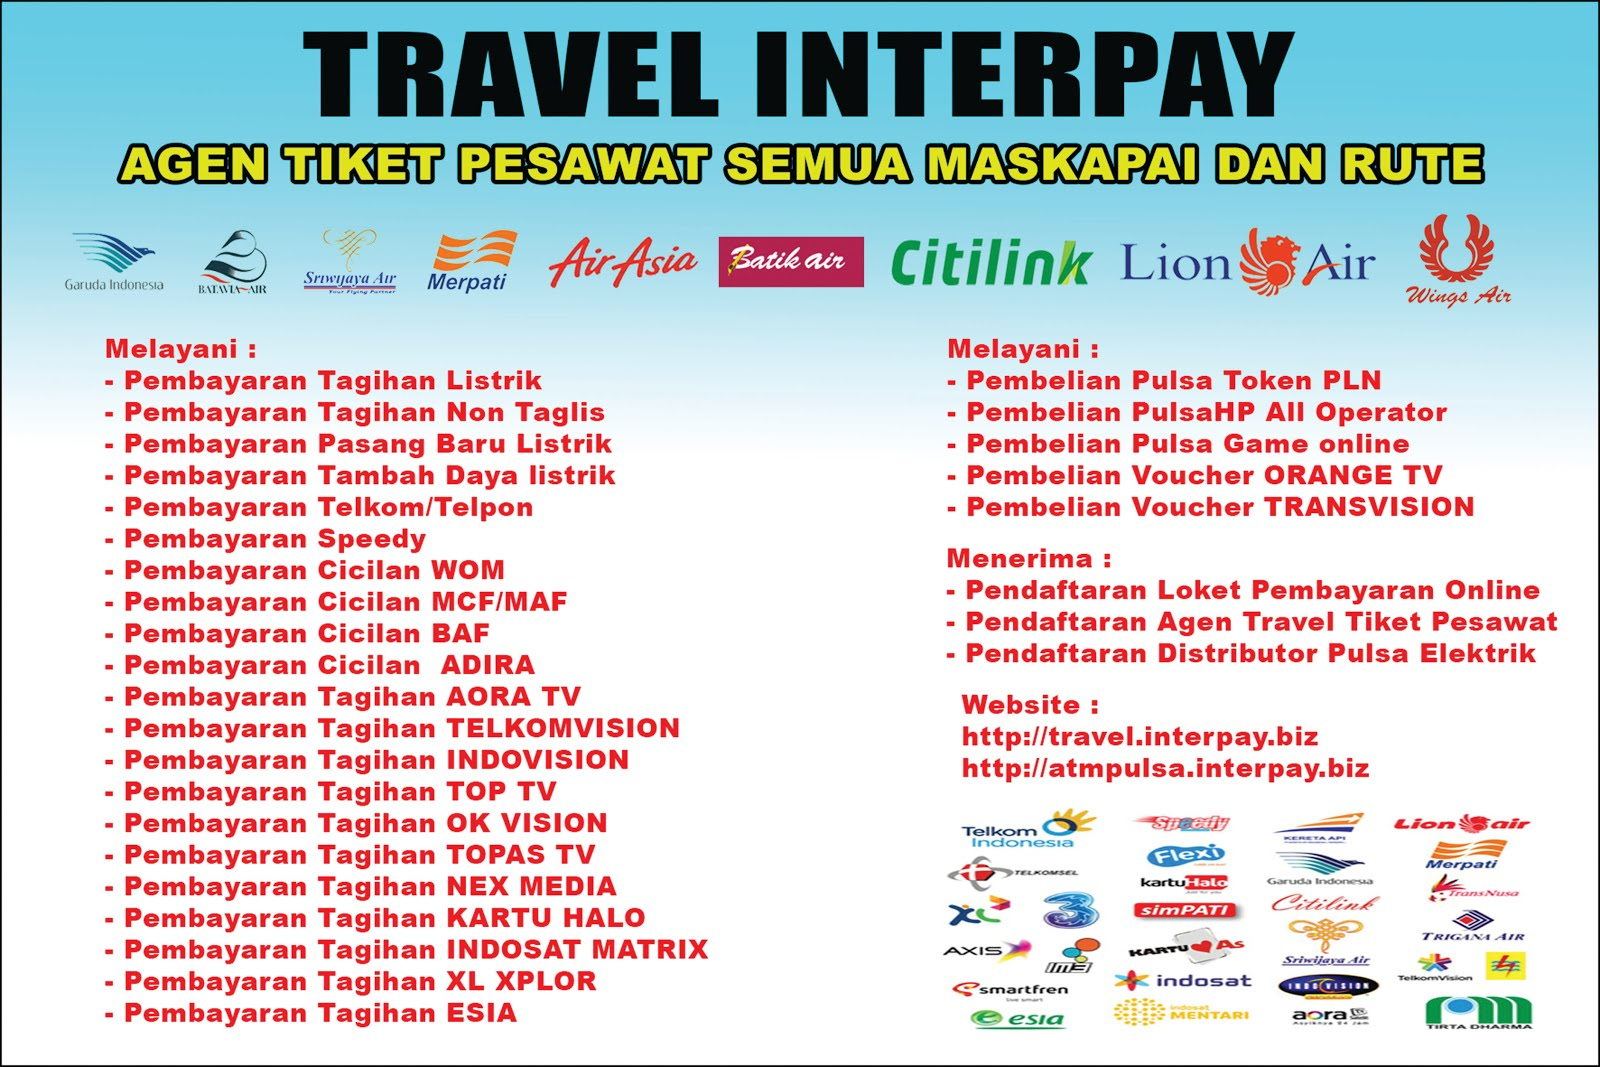 TRAVEL INTERPAY